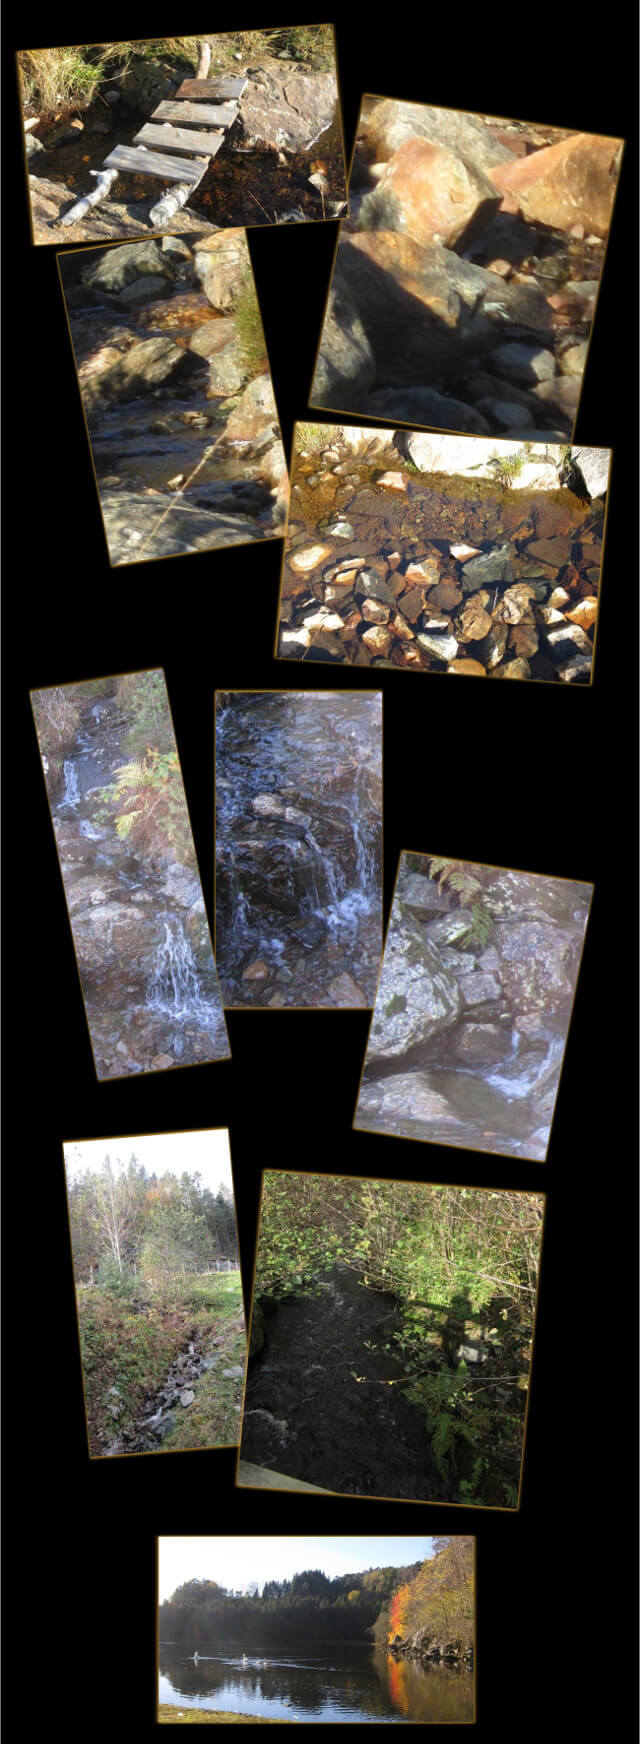 October 13 and 15, 2014 - Wordless Wednesday: mountain stream